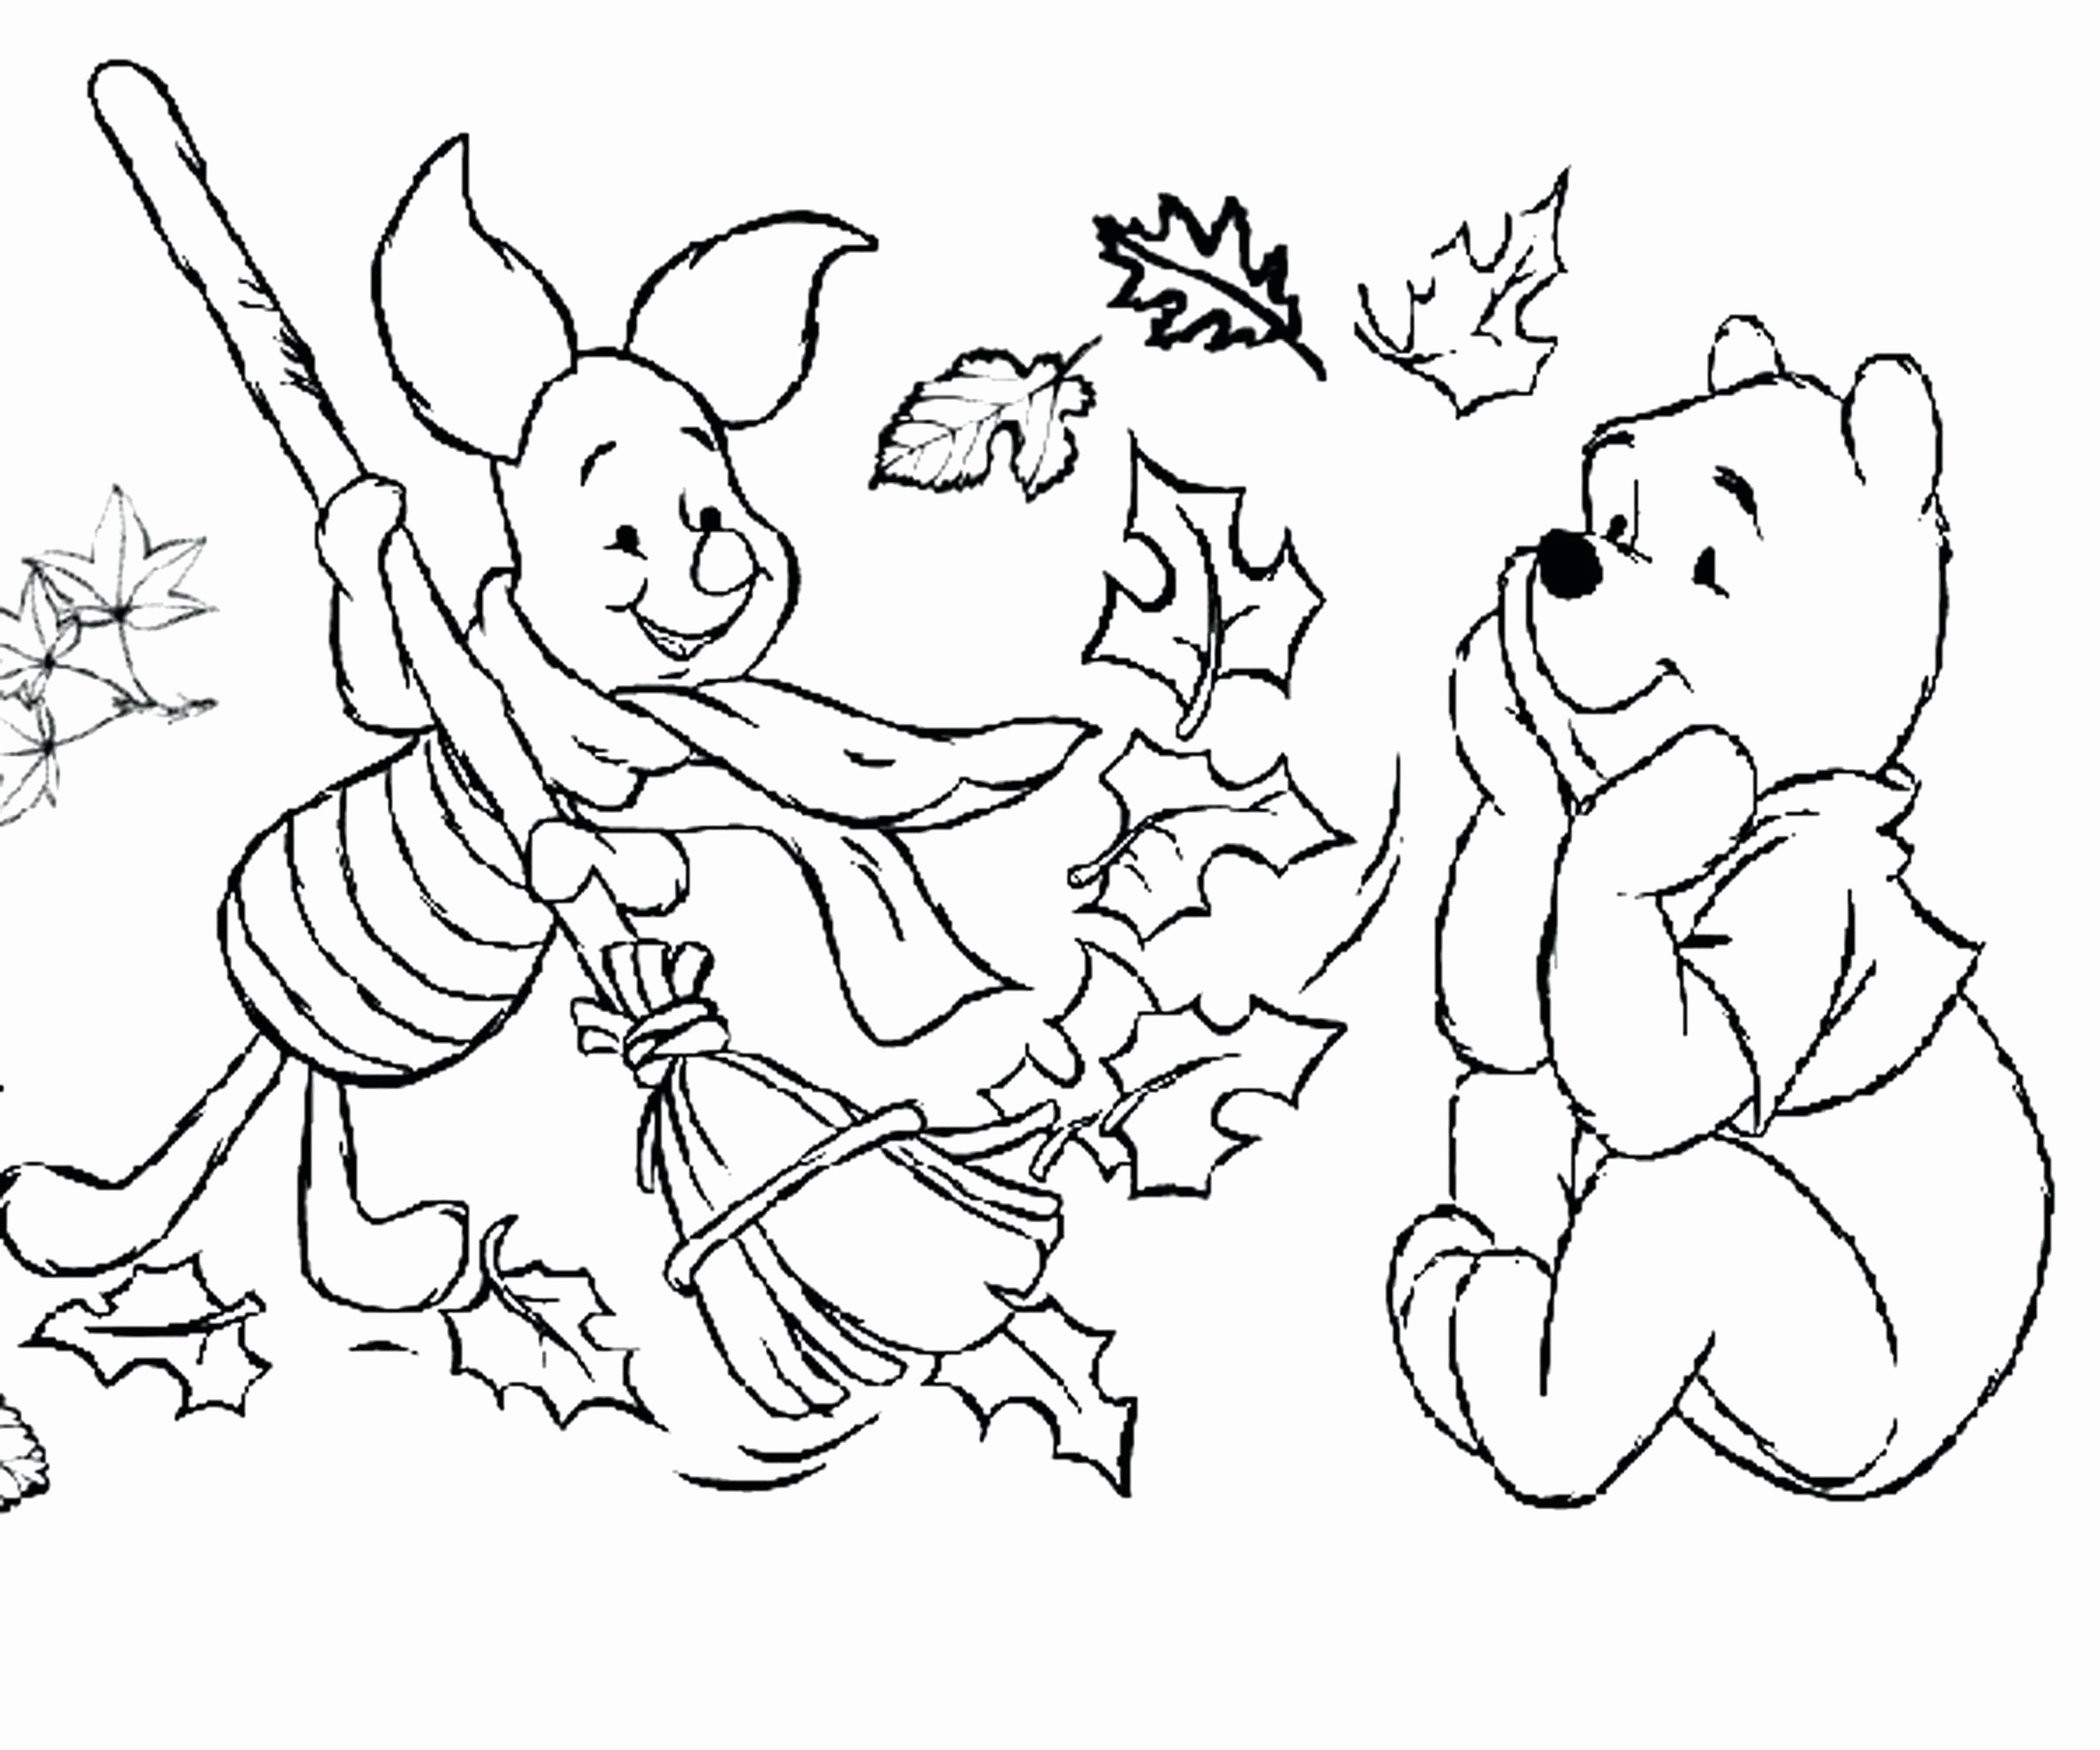 Coloring Pages Lego  Collection 15s - Free For Children